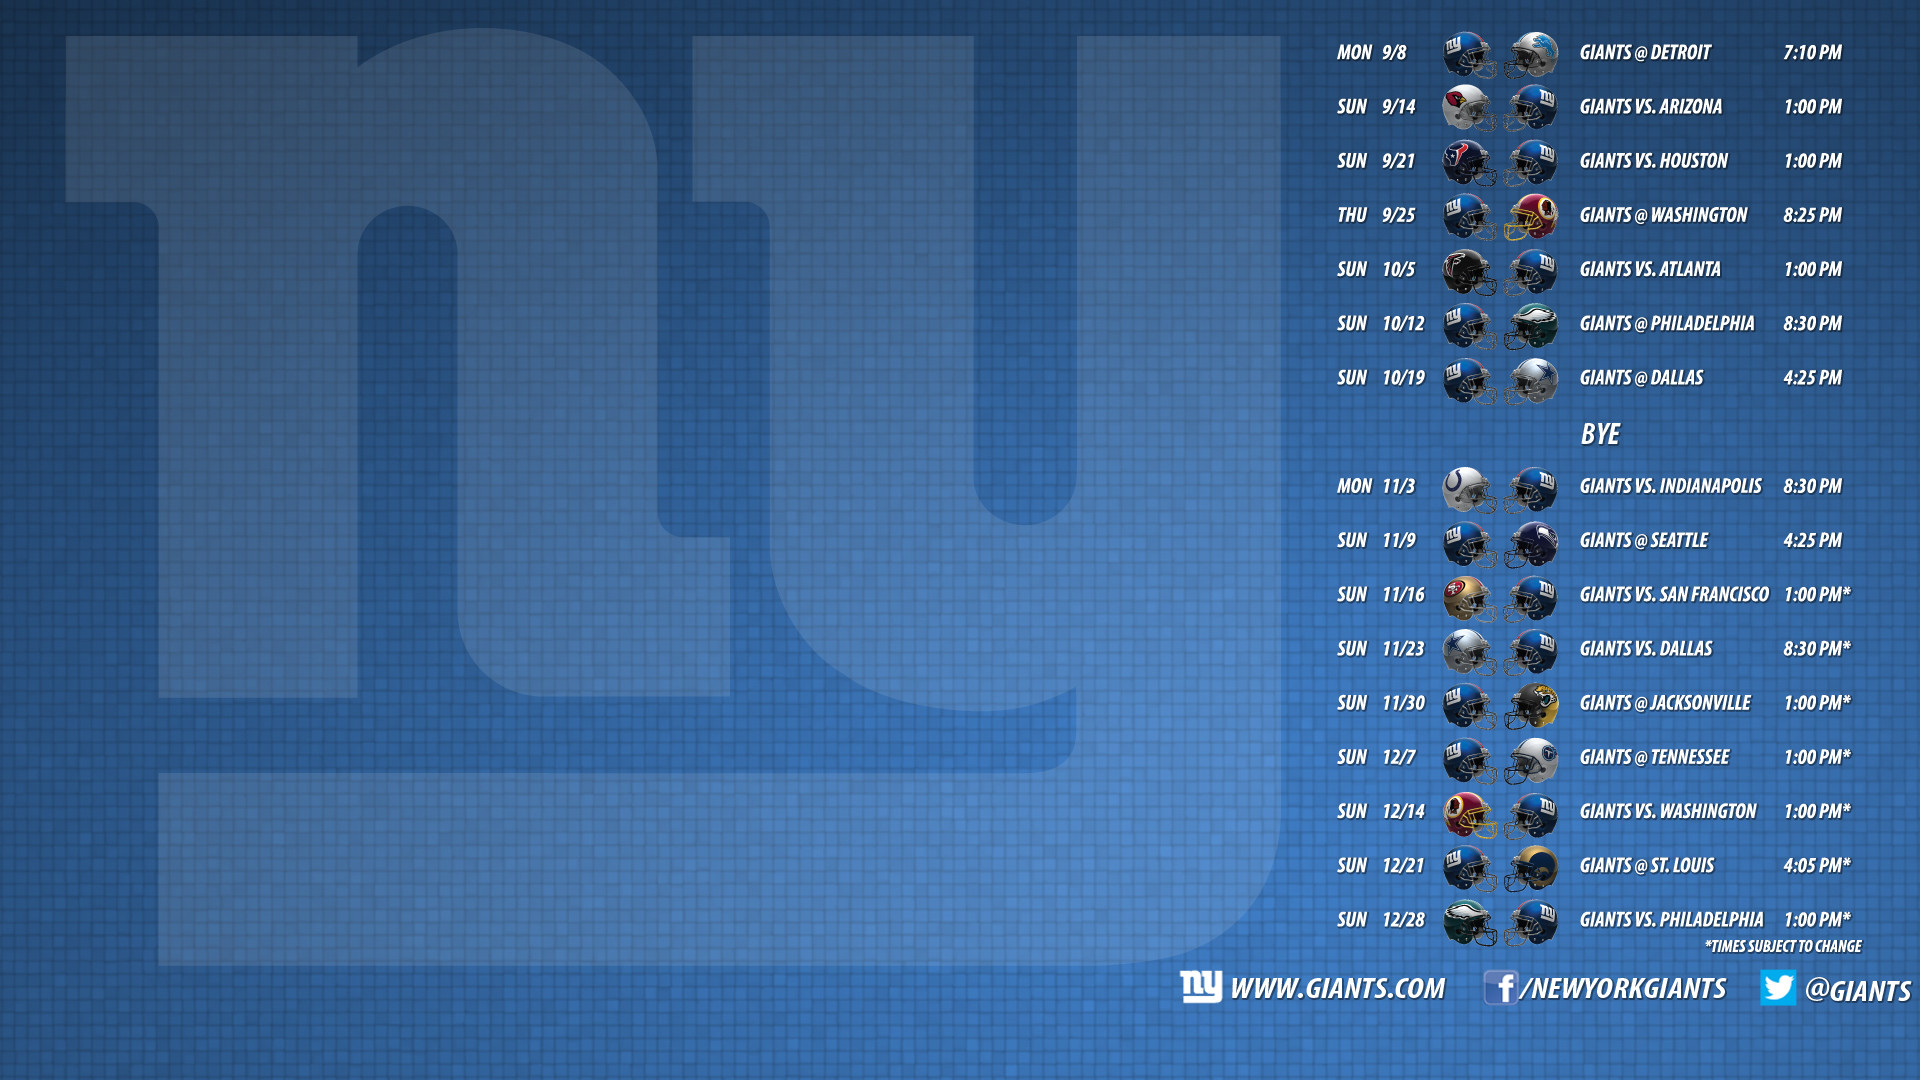 1920x1080 Download the Giants 2016 schedule desktop wallpaper